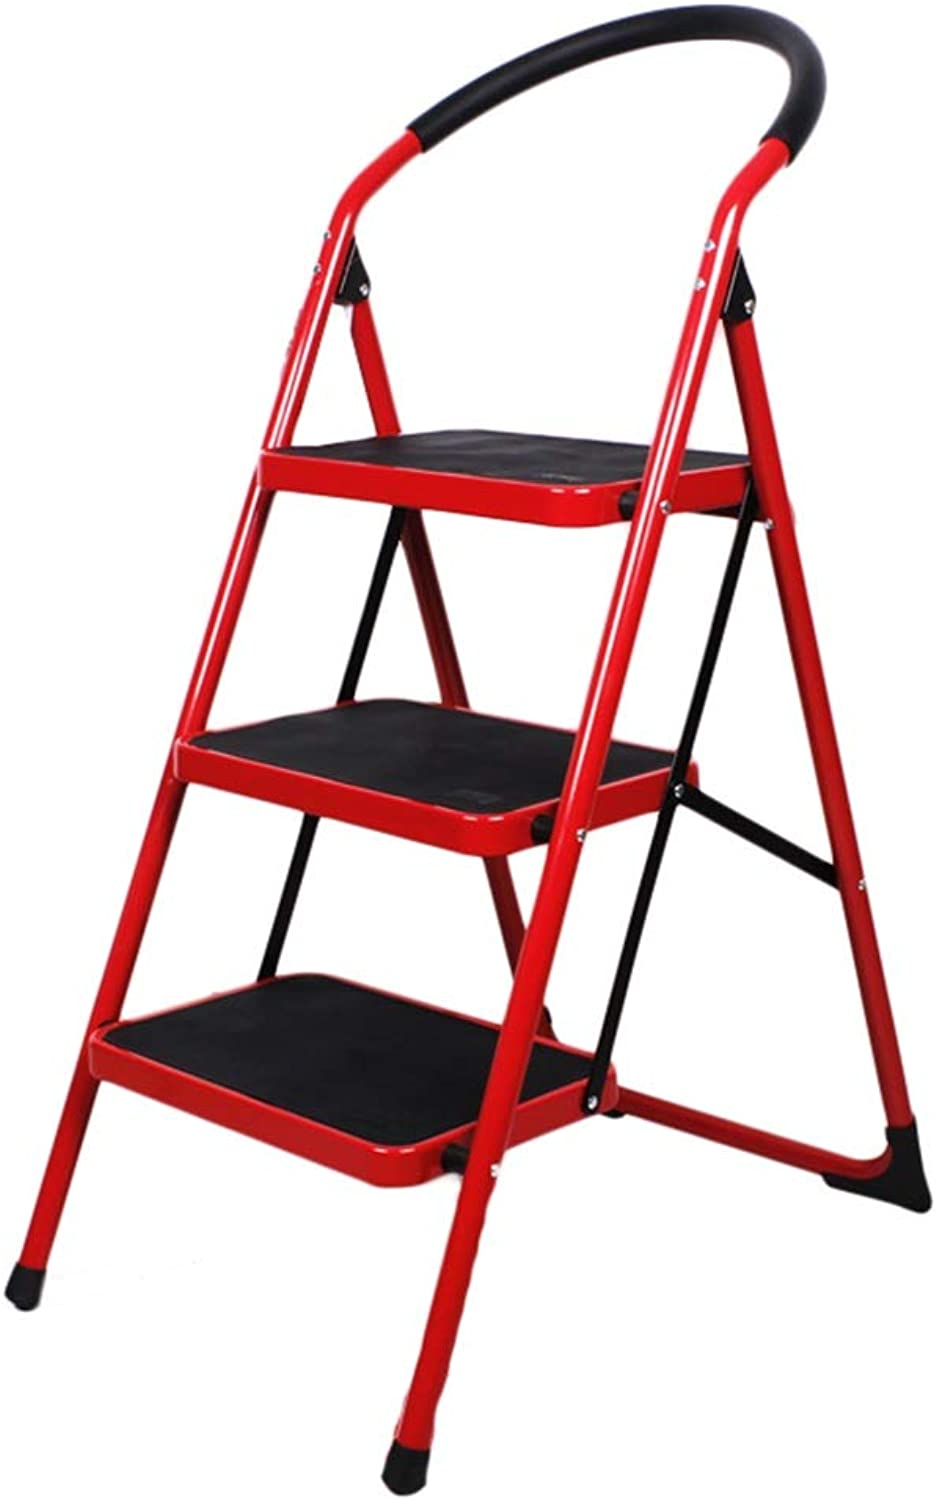 Portable Ladder Stool 3-Step Stools Easy to Store Foldable Design Ideal for Home Kitchen Garage (color   RED)